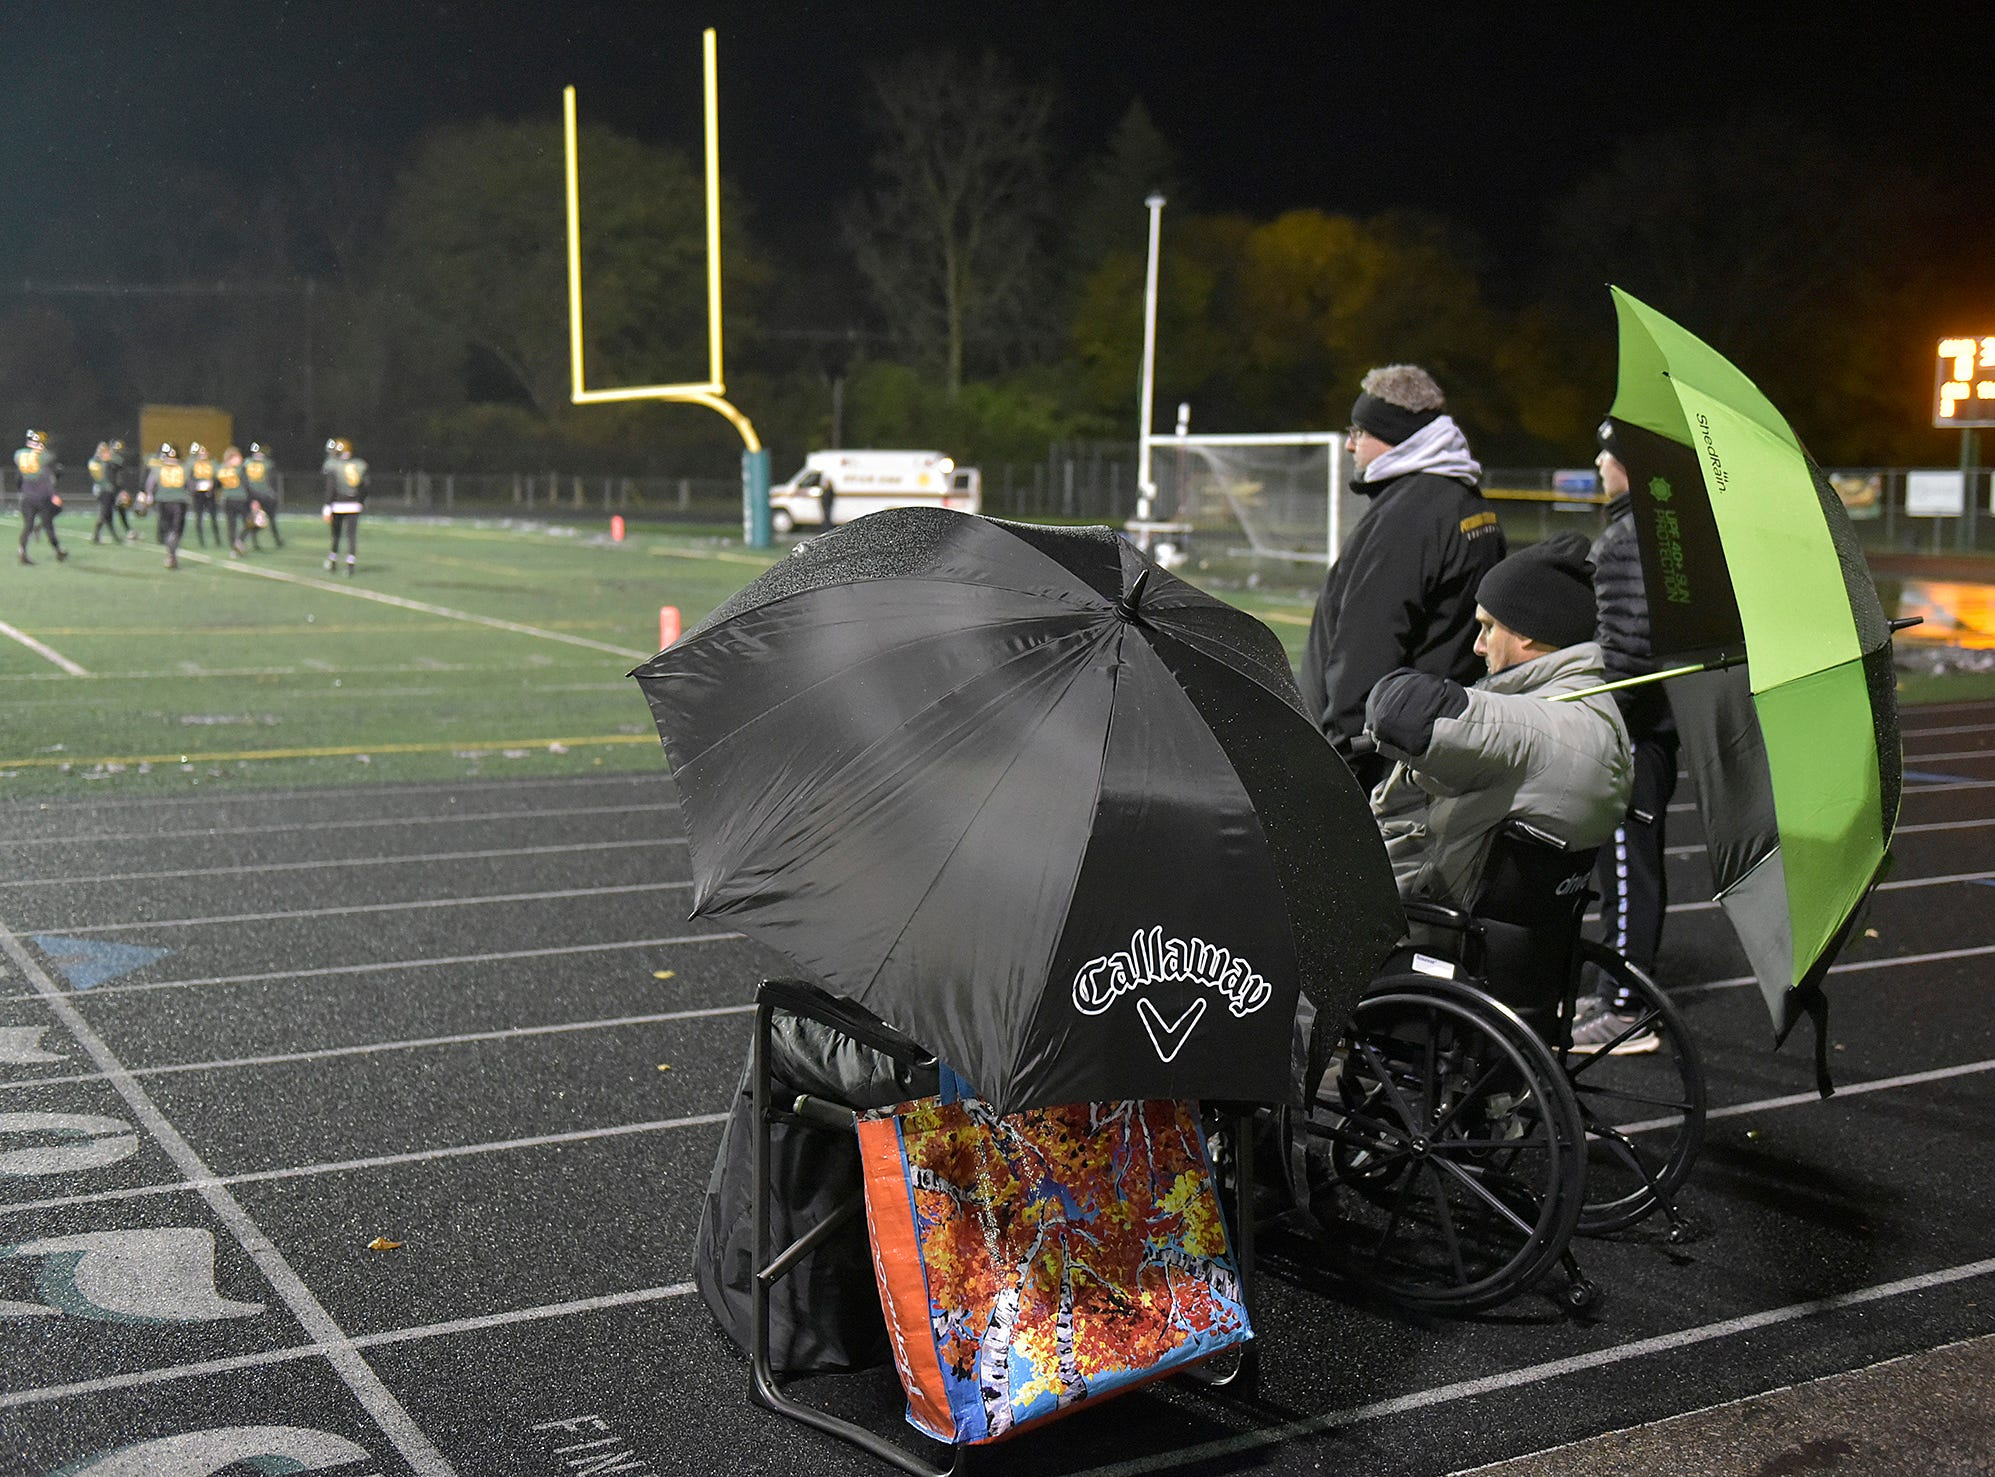 Drizzle, then snow showers didn't keep these Groves fans from the game against the Franklin Patriots.